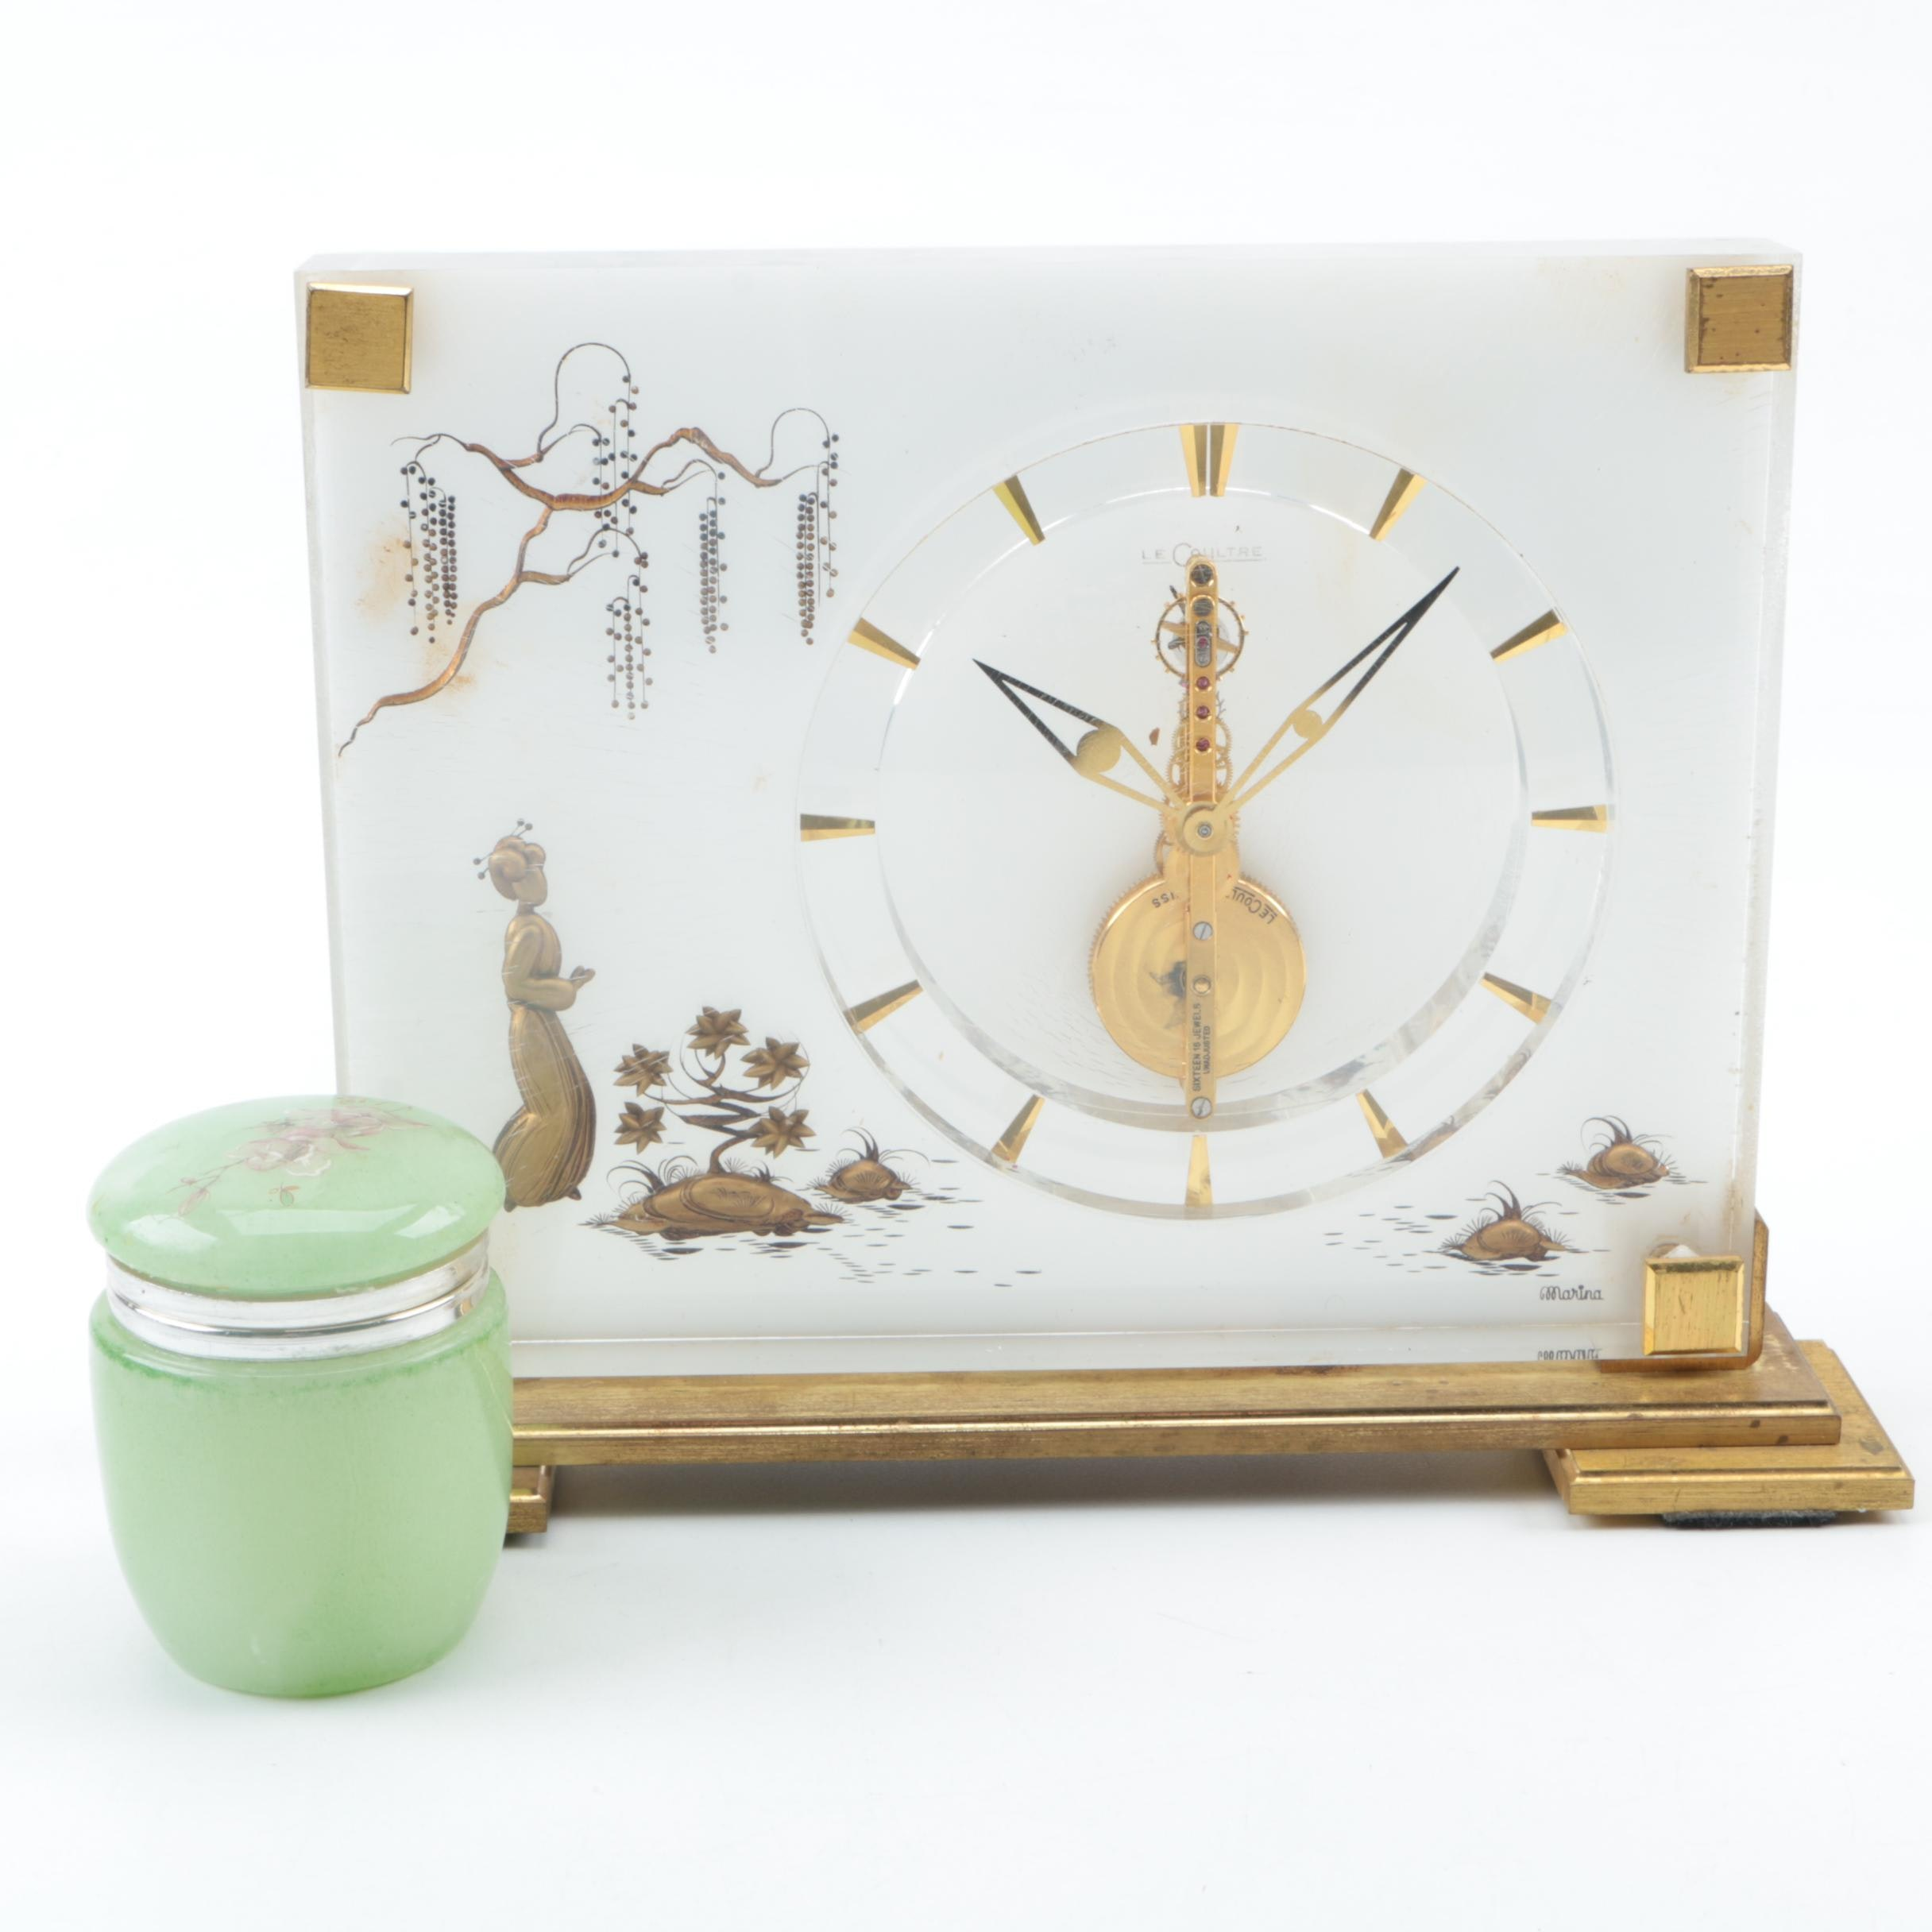 Le Coultre Lucite Marina Clock and Alabaster Canister